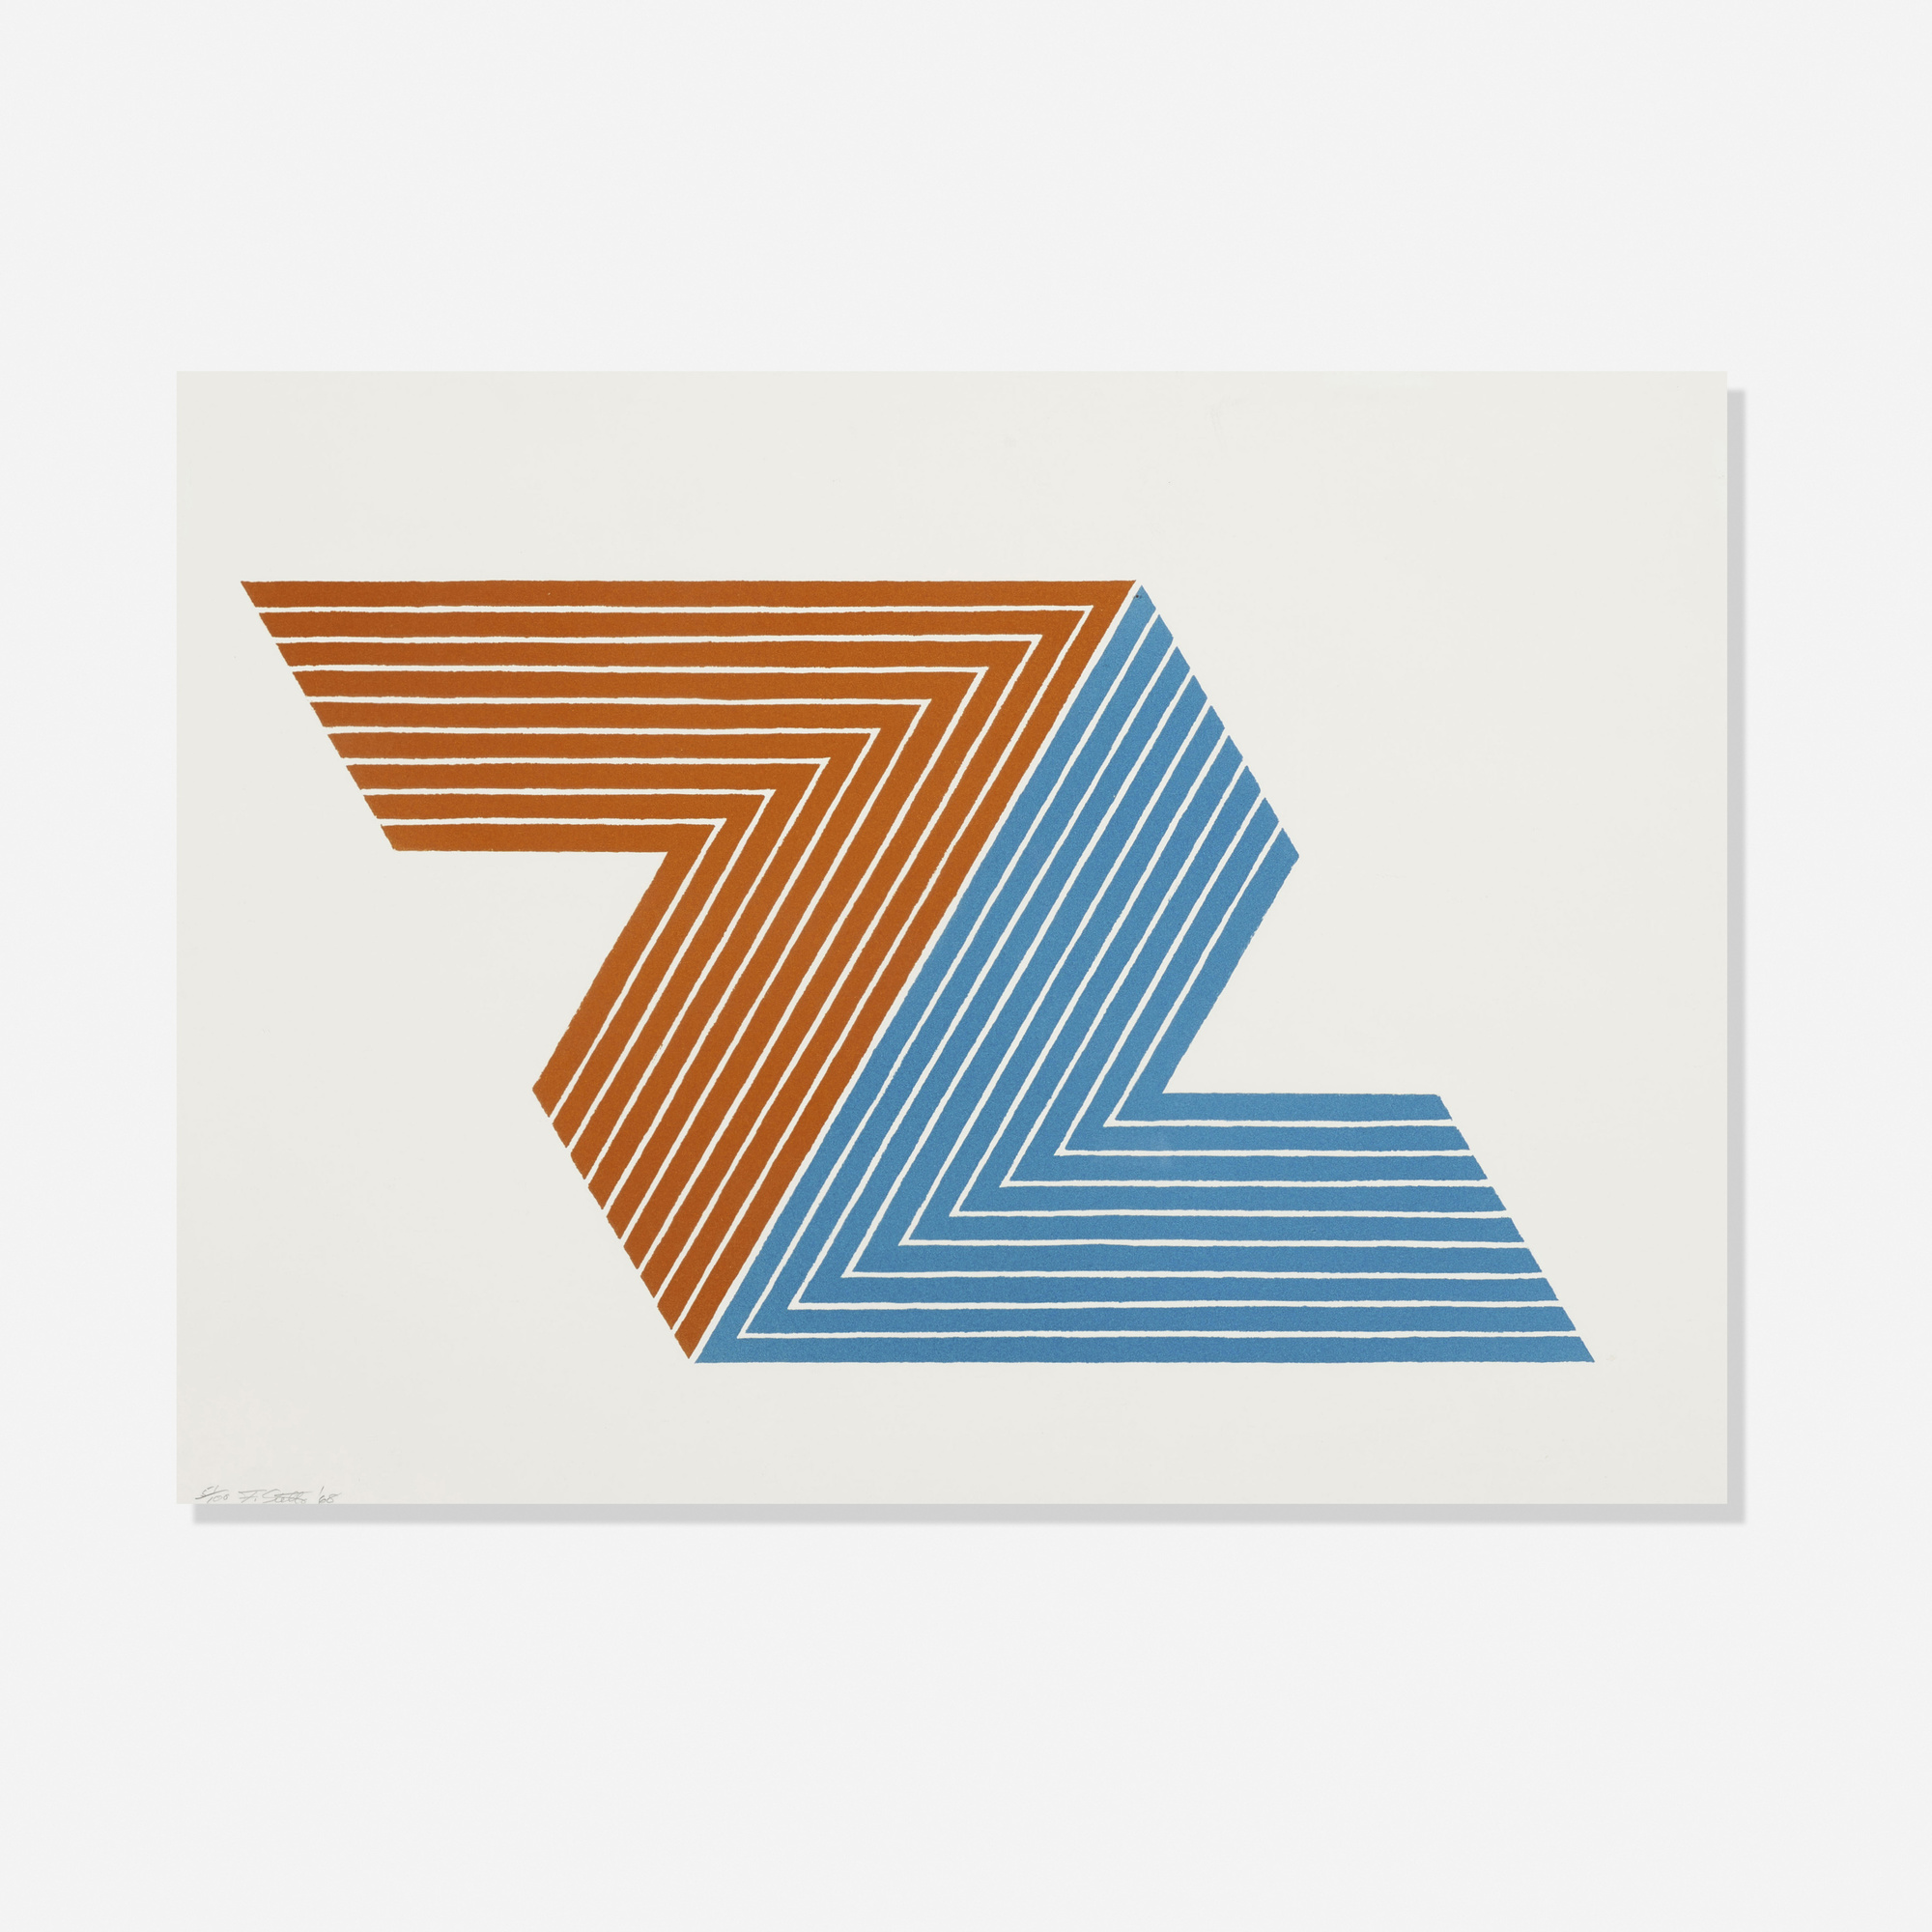 101: Frank Stella / Itata (from the V Series) (1 of 2)